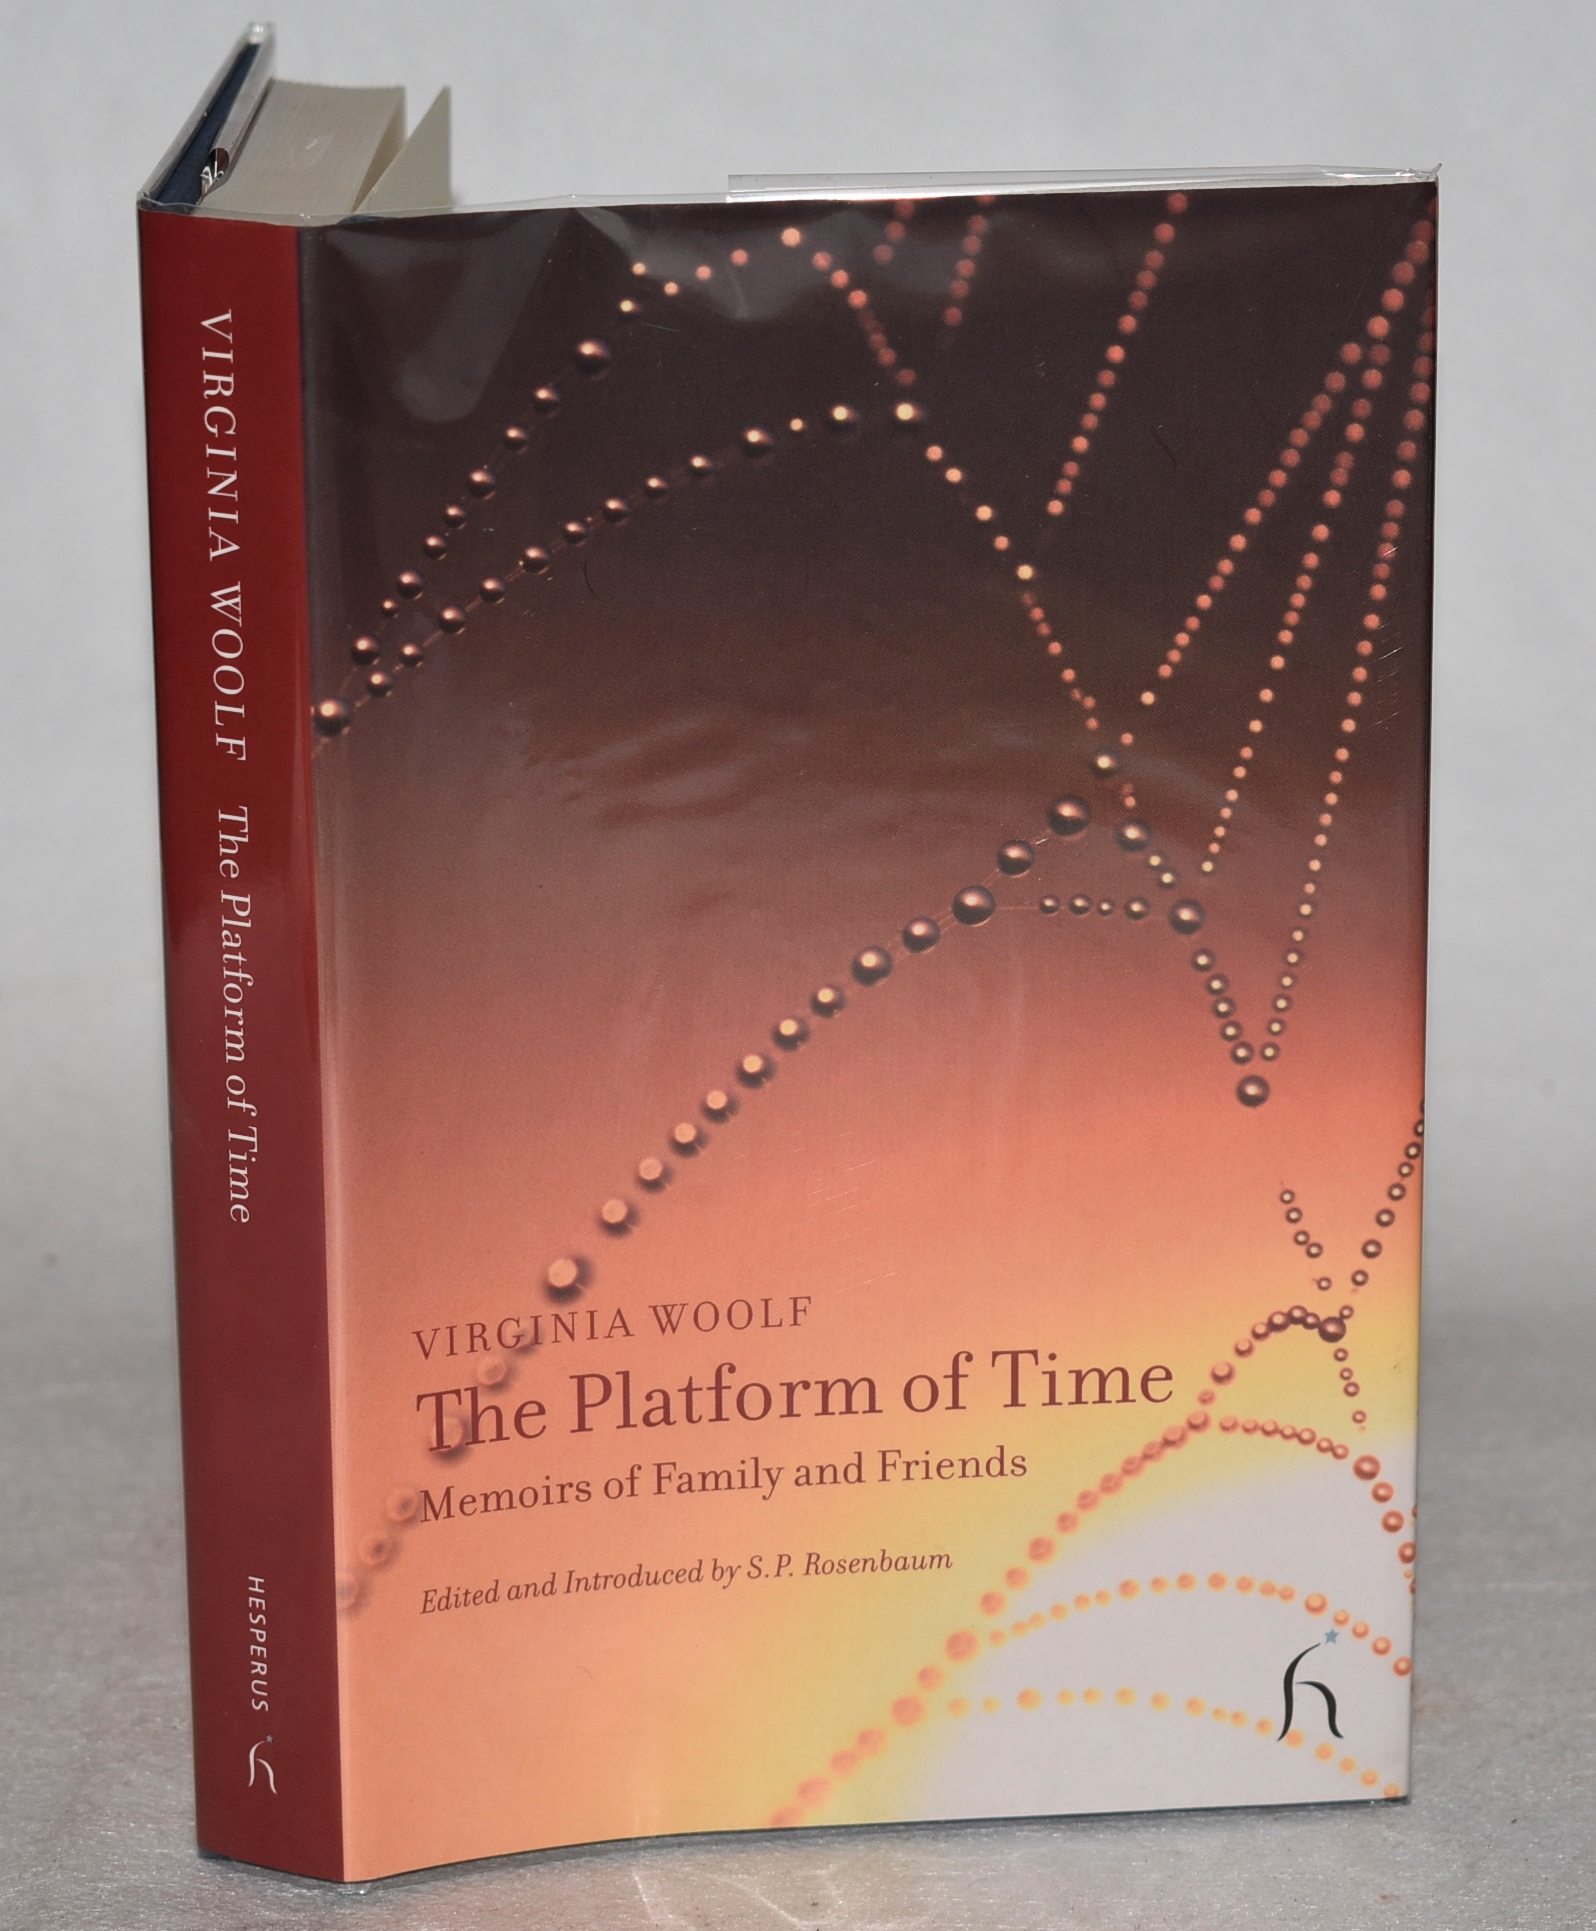 Image for The Platform of Time. Memoirs of Family and Friends. Edited by S.P.Rosenbaum.